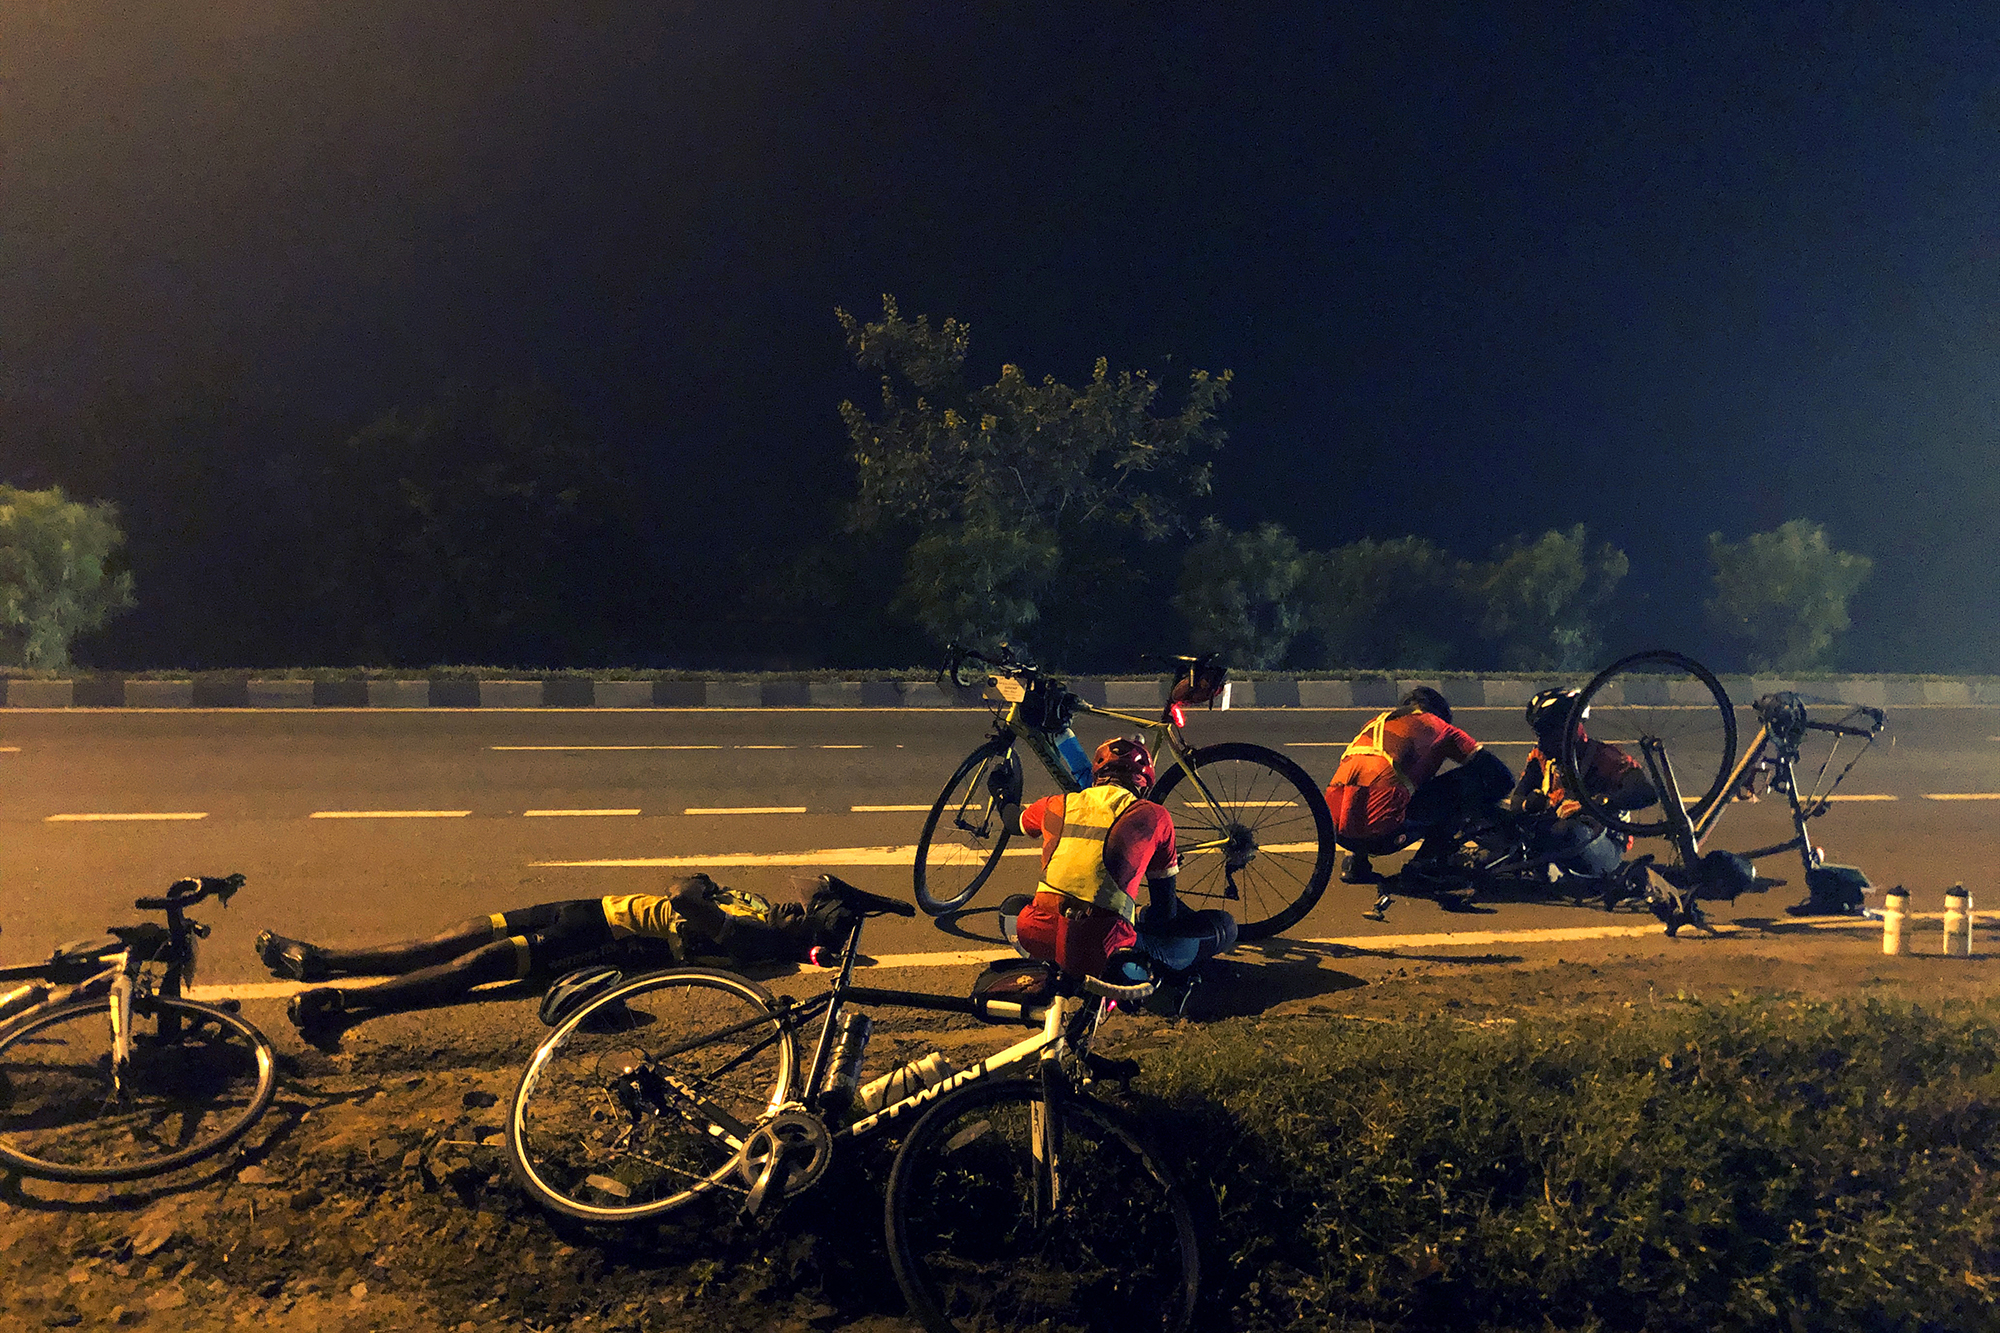 The image looks like its straight out of a gory accident scene. This is the world of an endurance ride where cyclists are on the pedal for two consecutive days to cover 600KMs or more. A 10 minute recharge break every few hours is all the time they get to catch a wink and service their cycles. Who bothers about etiquette or niceties then?